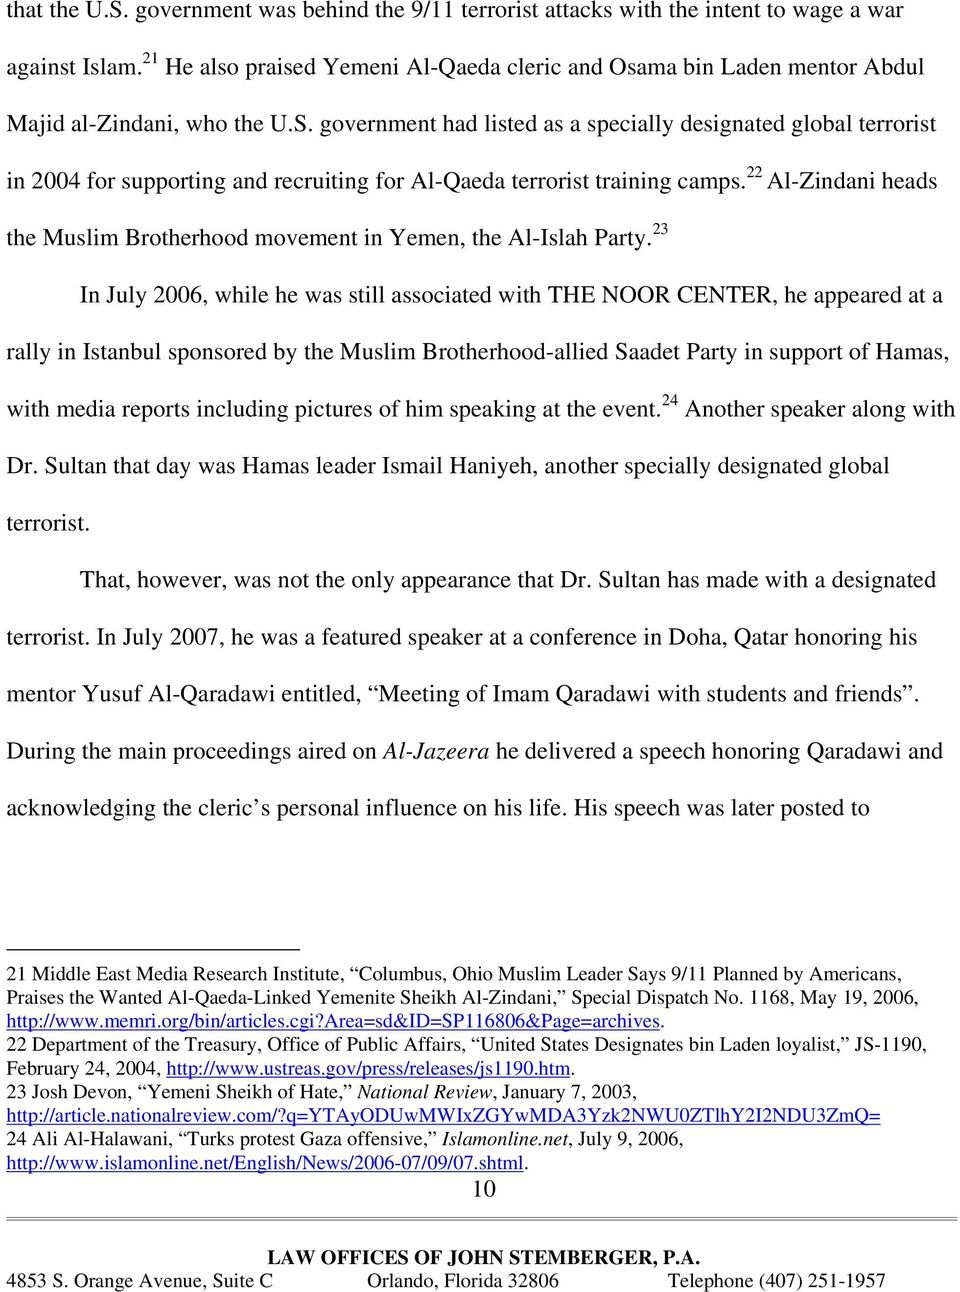 government had listed as a specially designated global terrorist in 2004 for supporting and recruiting for Al-Qaeda terrorist training camps.